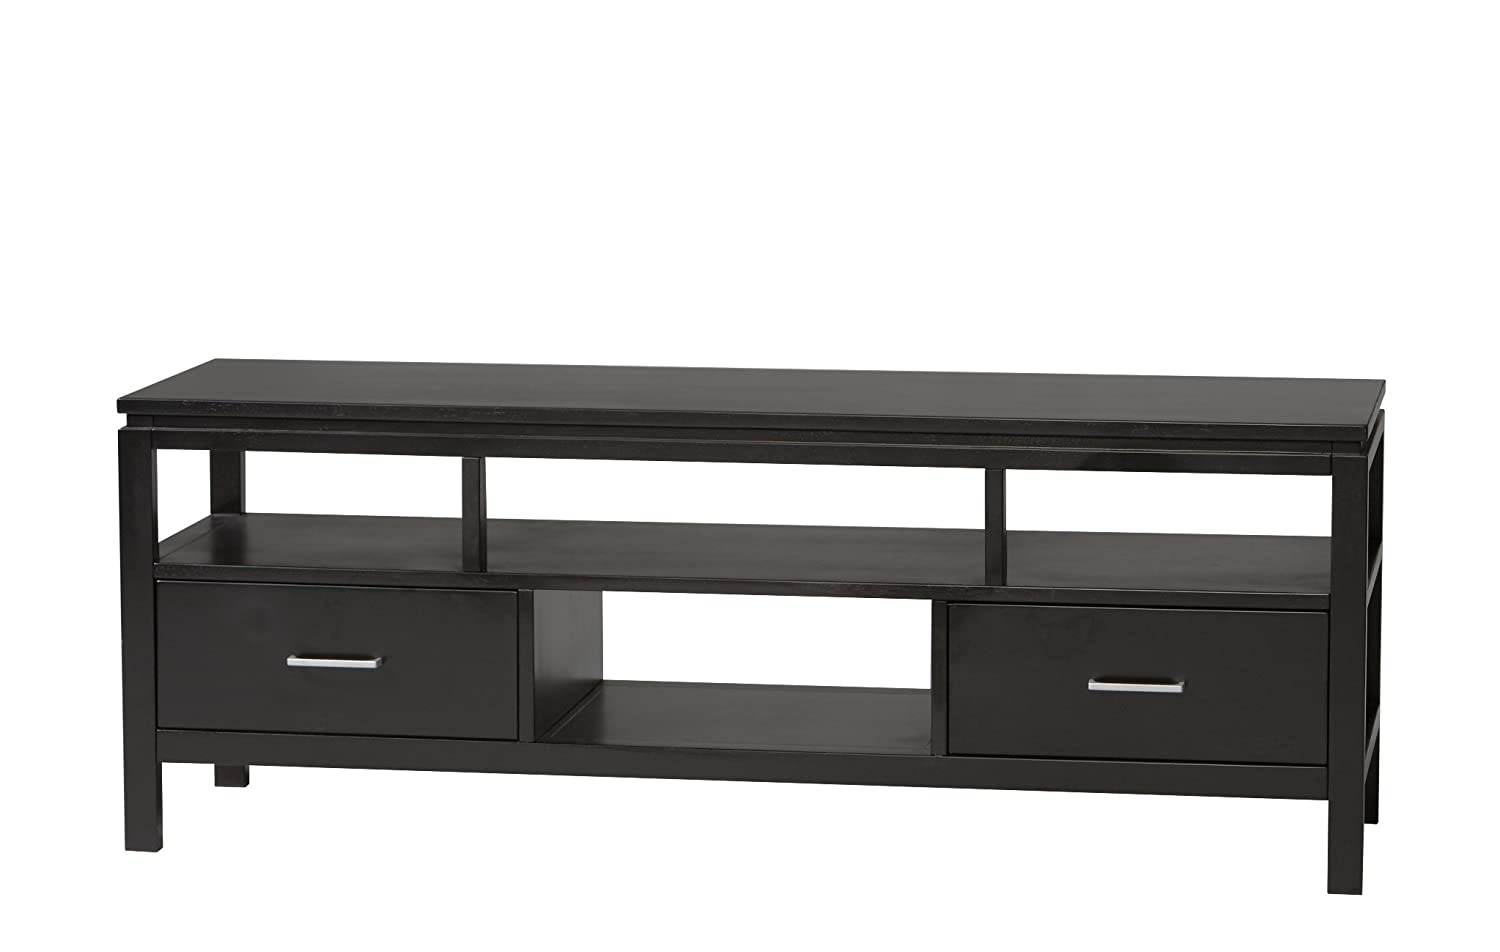 Amazon.com: Linon Sutton Black Plasma TV Center: Kitchen & Dining